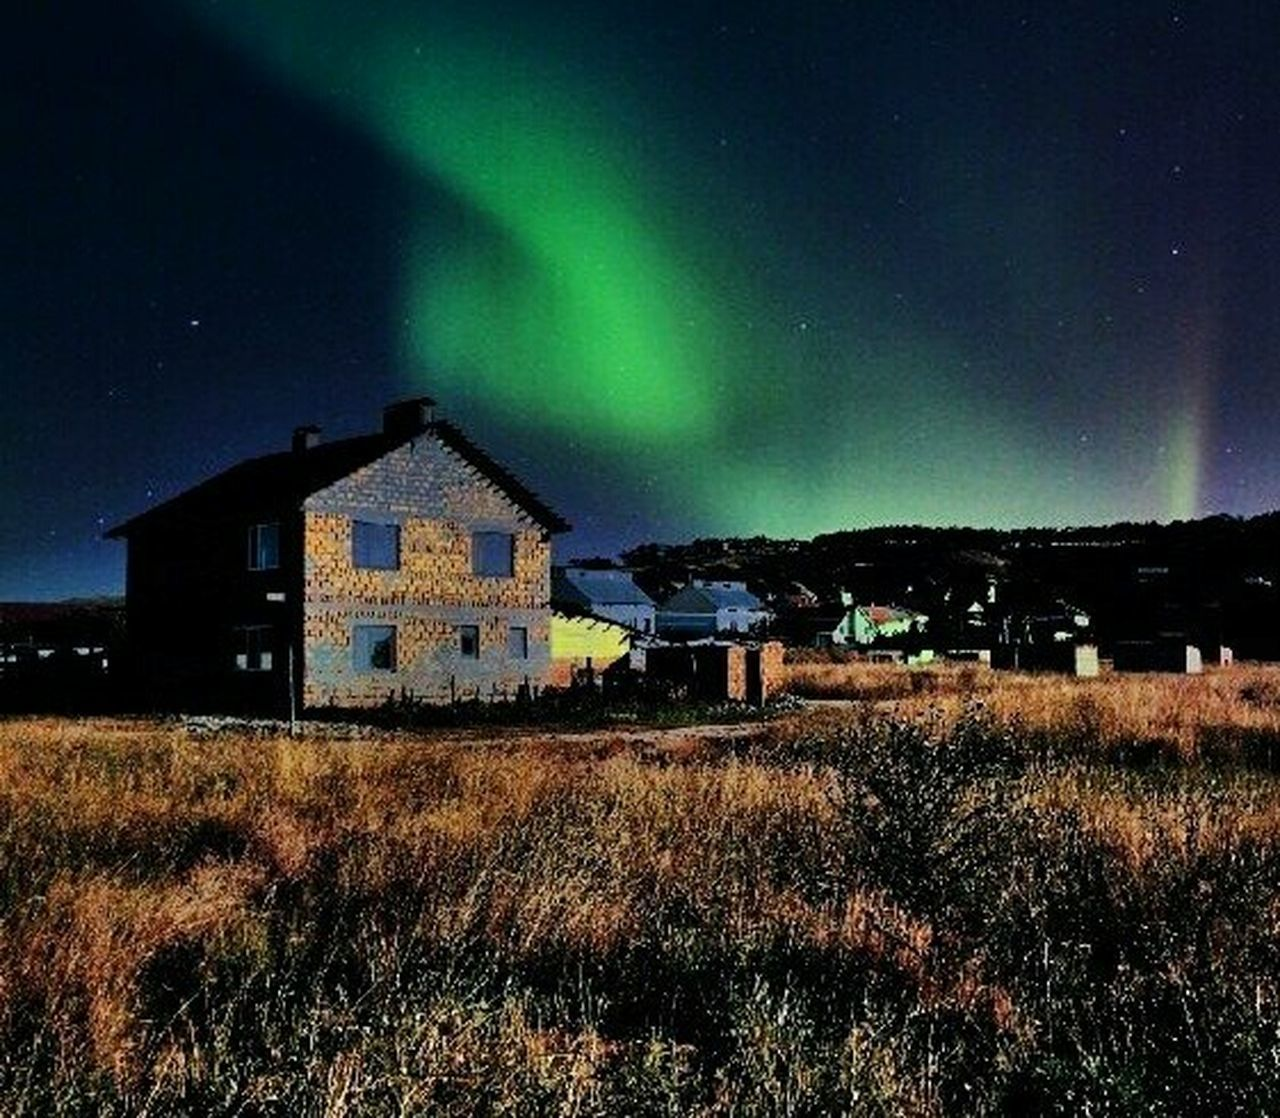 night, built structure, house, architecture, no people, building exterior, dramatic sky, grass, green color, aurora polaris, outdoors, illuminated, sky, tranquility, star - space, scenics, landscape, nature, beauty in nature, astronomy